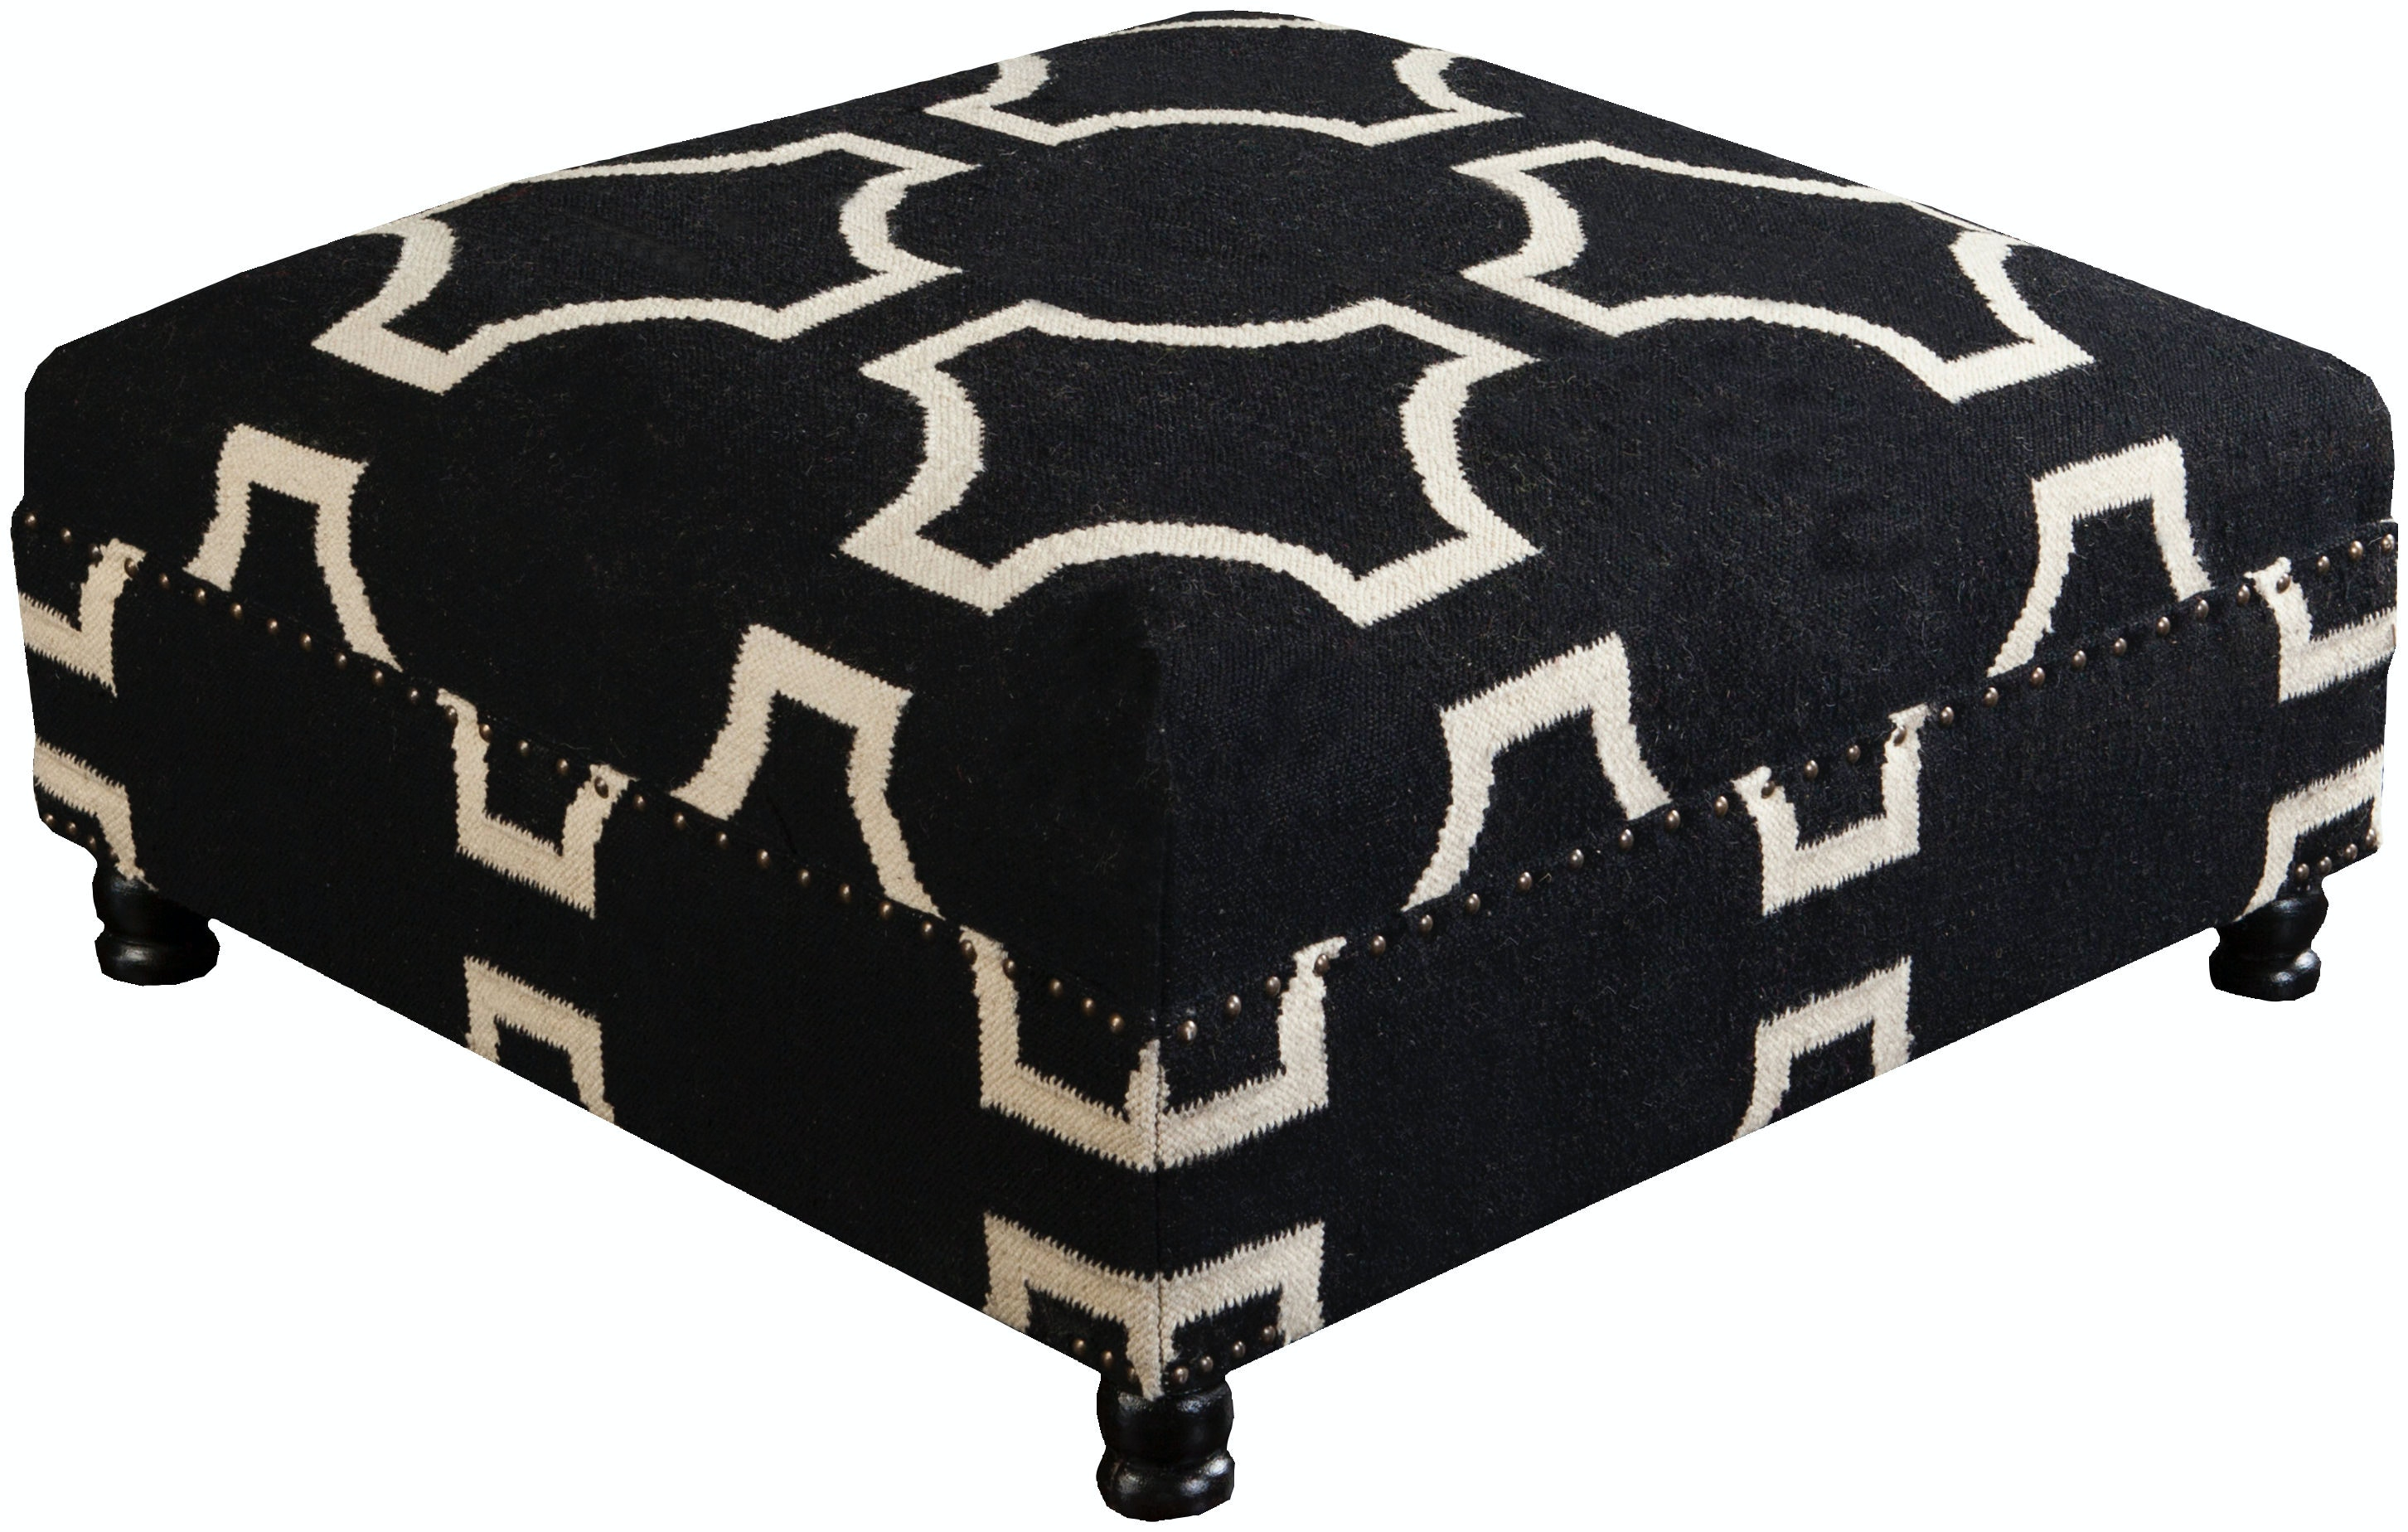 Surya Furniture 32 X 32 X 16 Ottoman FL1003 323216